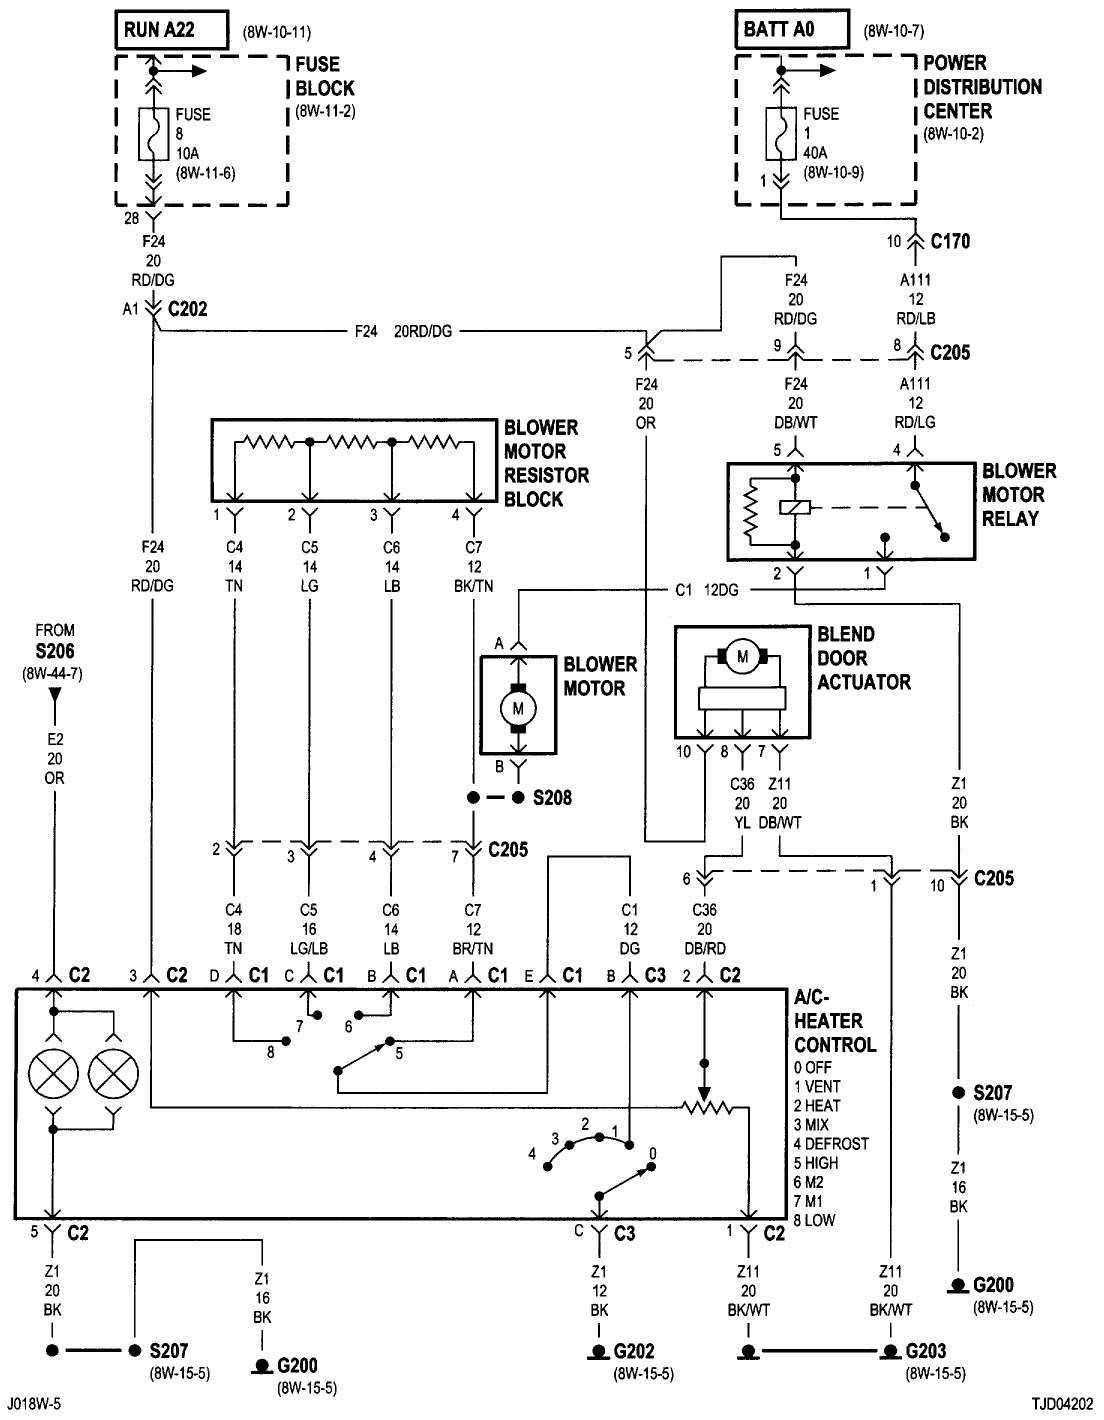 [DIAGRAM_34OR]  Wiring Diagram Electrical. Wiring Diagram Electrical. | Jeep tj, Jeep  wrangler, Jeep | 2002 Jeep Wrangler Fuel System Wiring Diagram |  | Pinterest